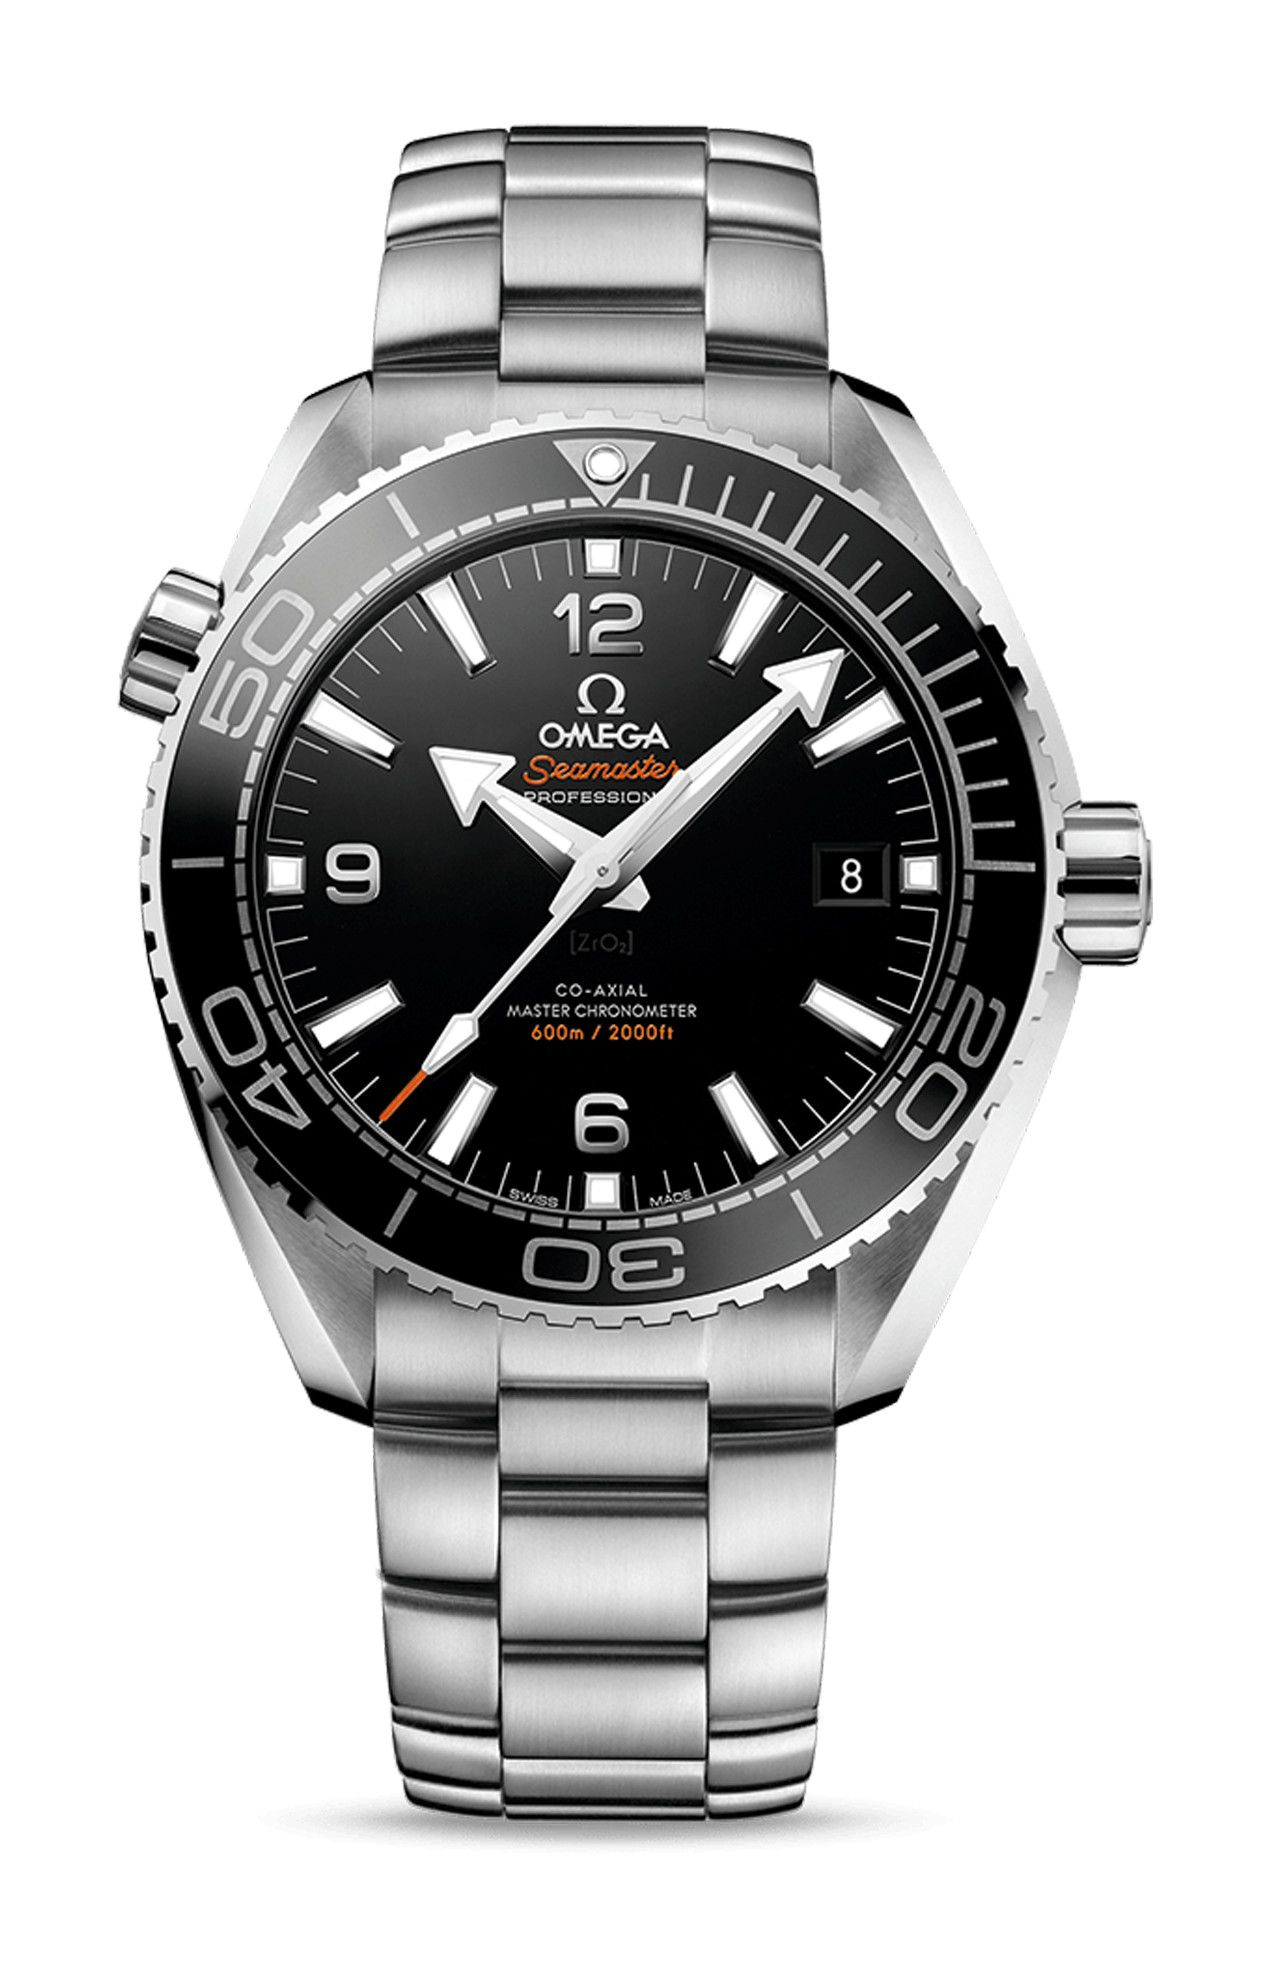 PLANET OCEAN 600M CO-AXIAL MASTER CHRONOMETER - 215.30.44.21.01.001